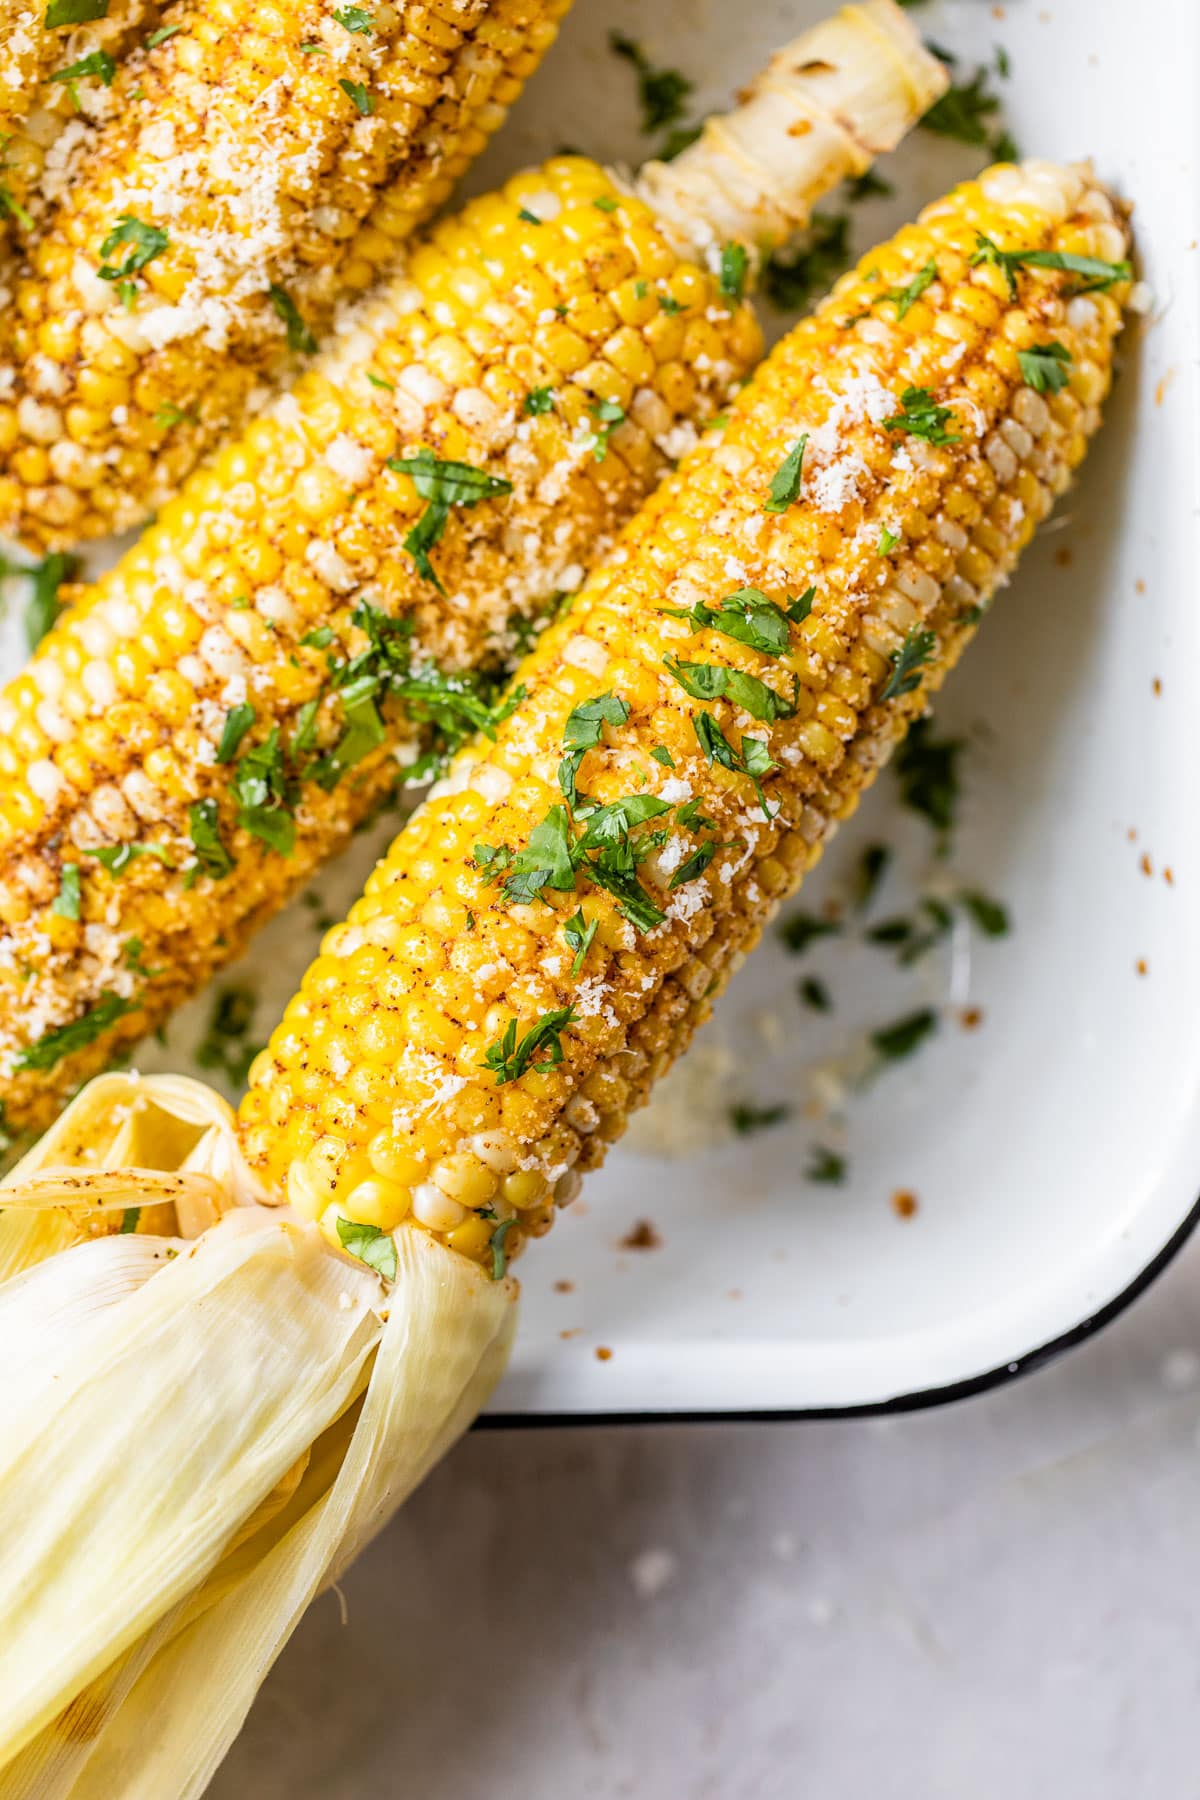 Corn on the grill with the husk on